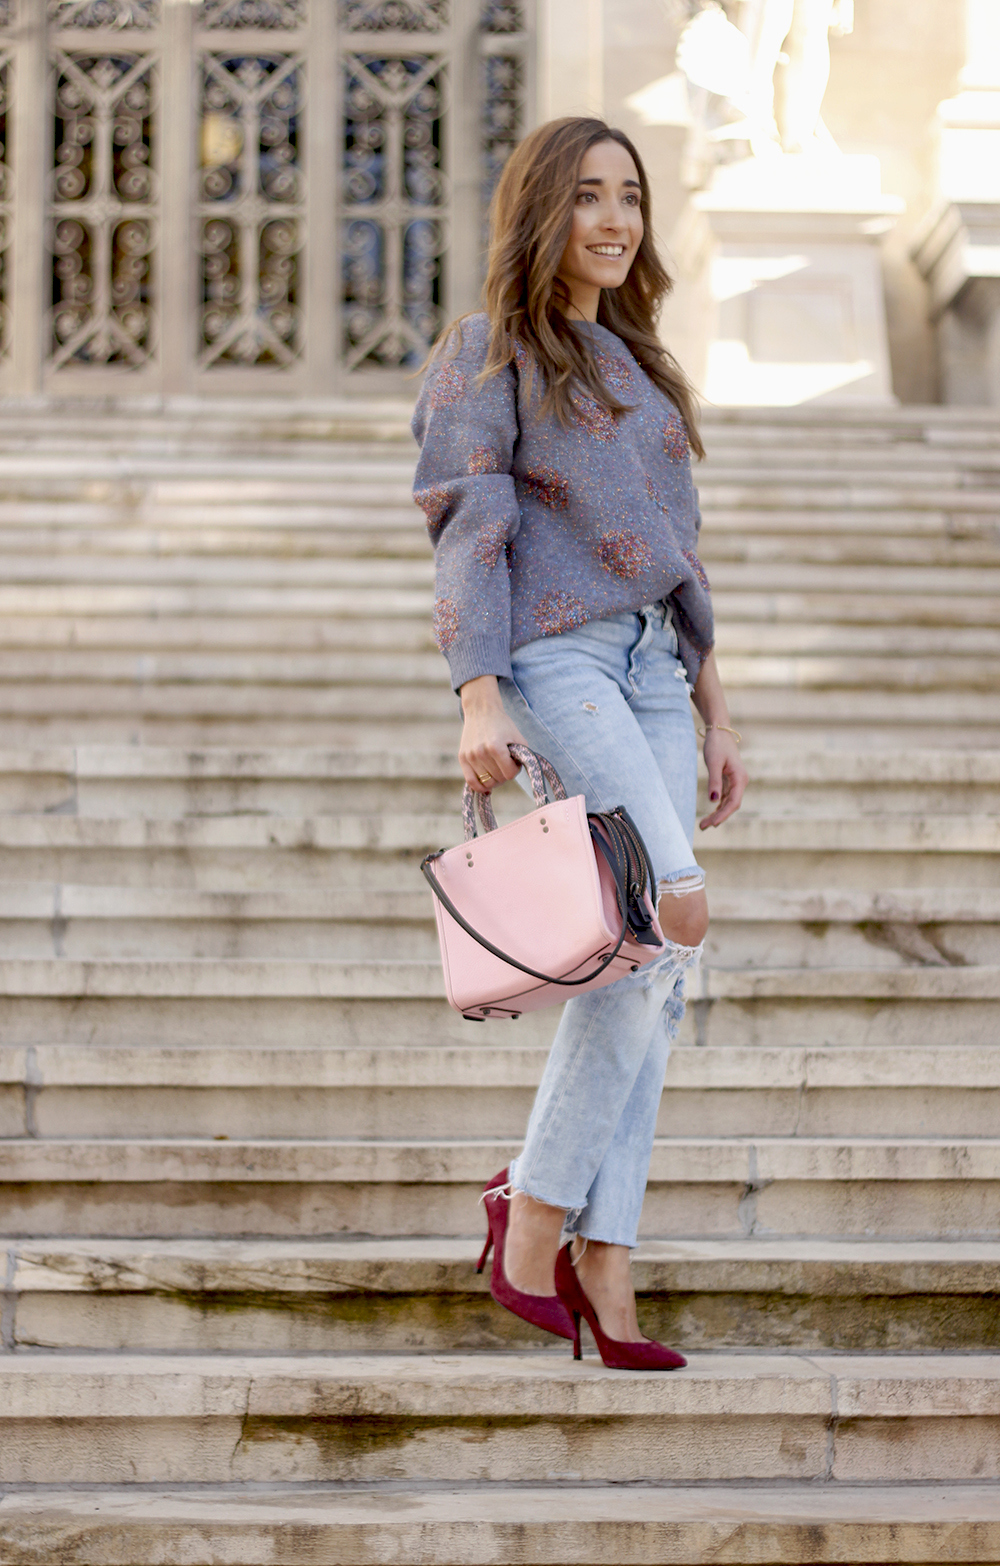 GRAY CHRISTMAS JERSEY ripped jeans pink coaach bag burgundy heels street style fall outfit 20186774